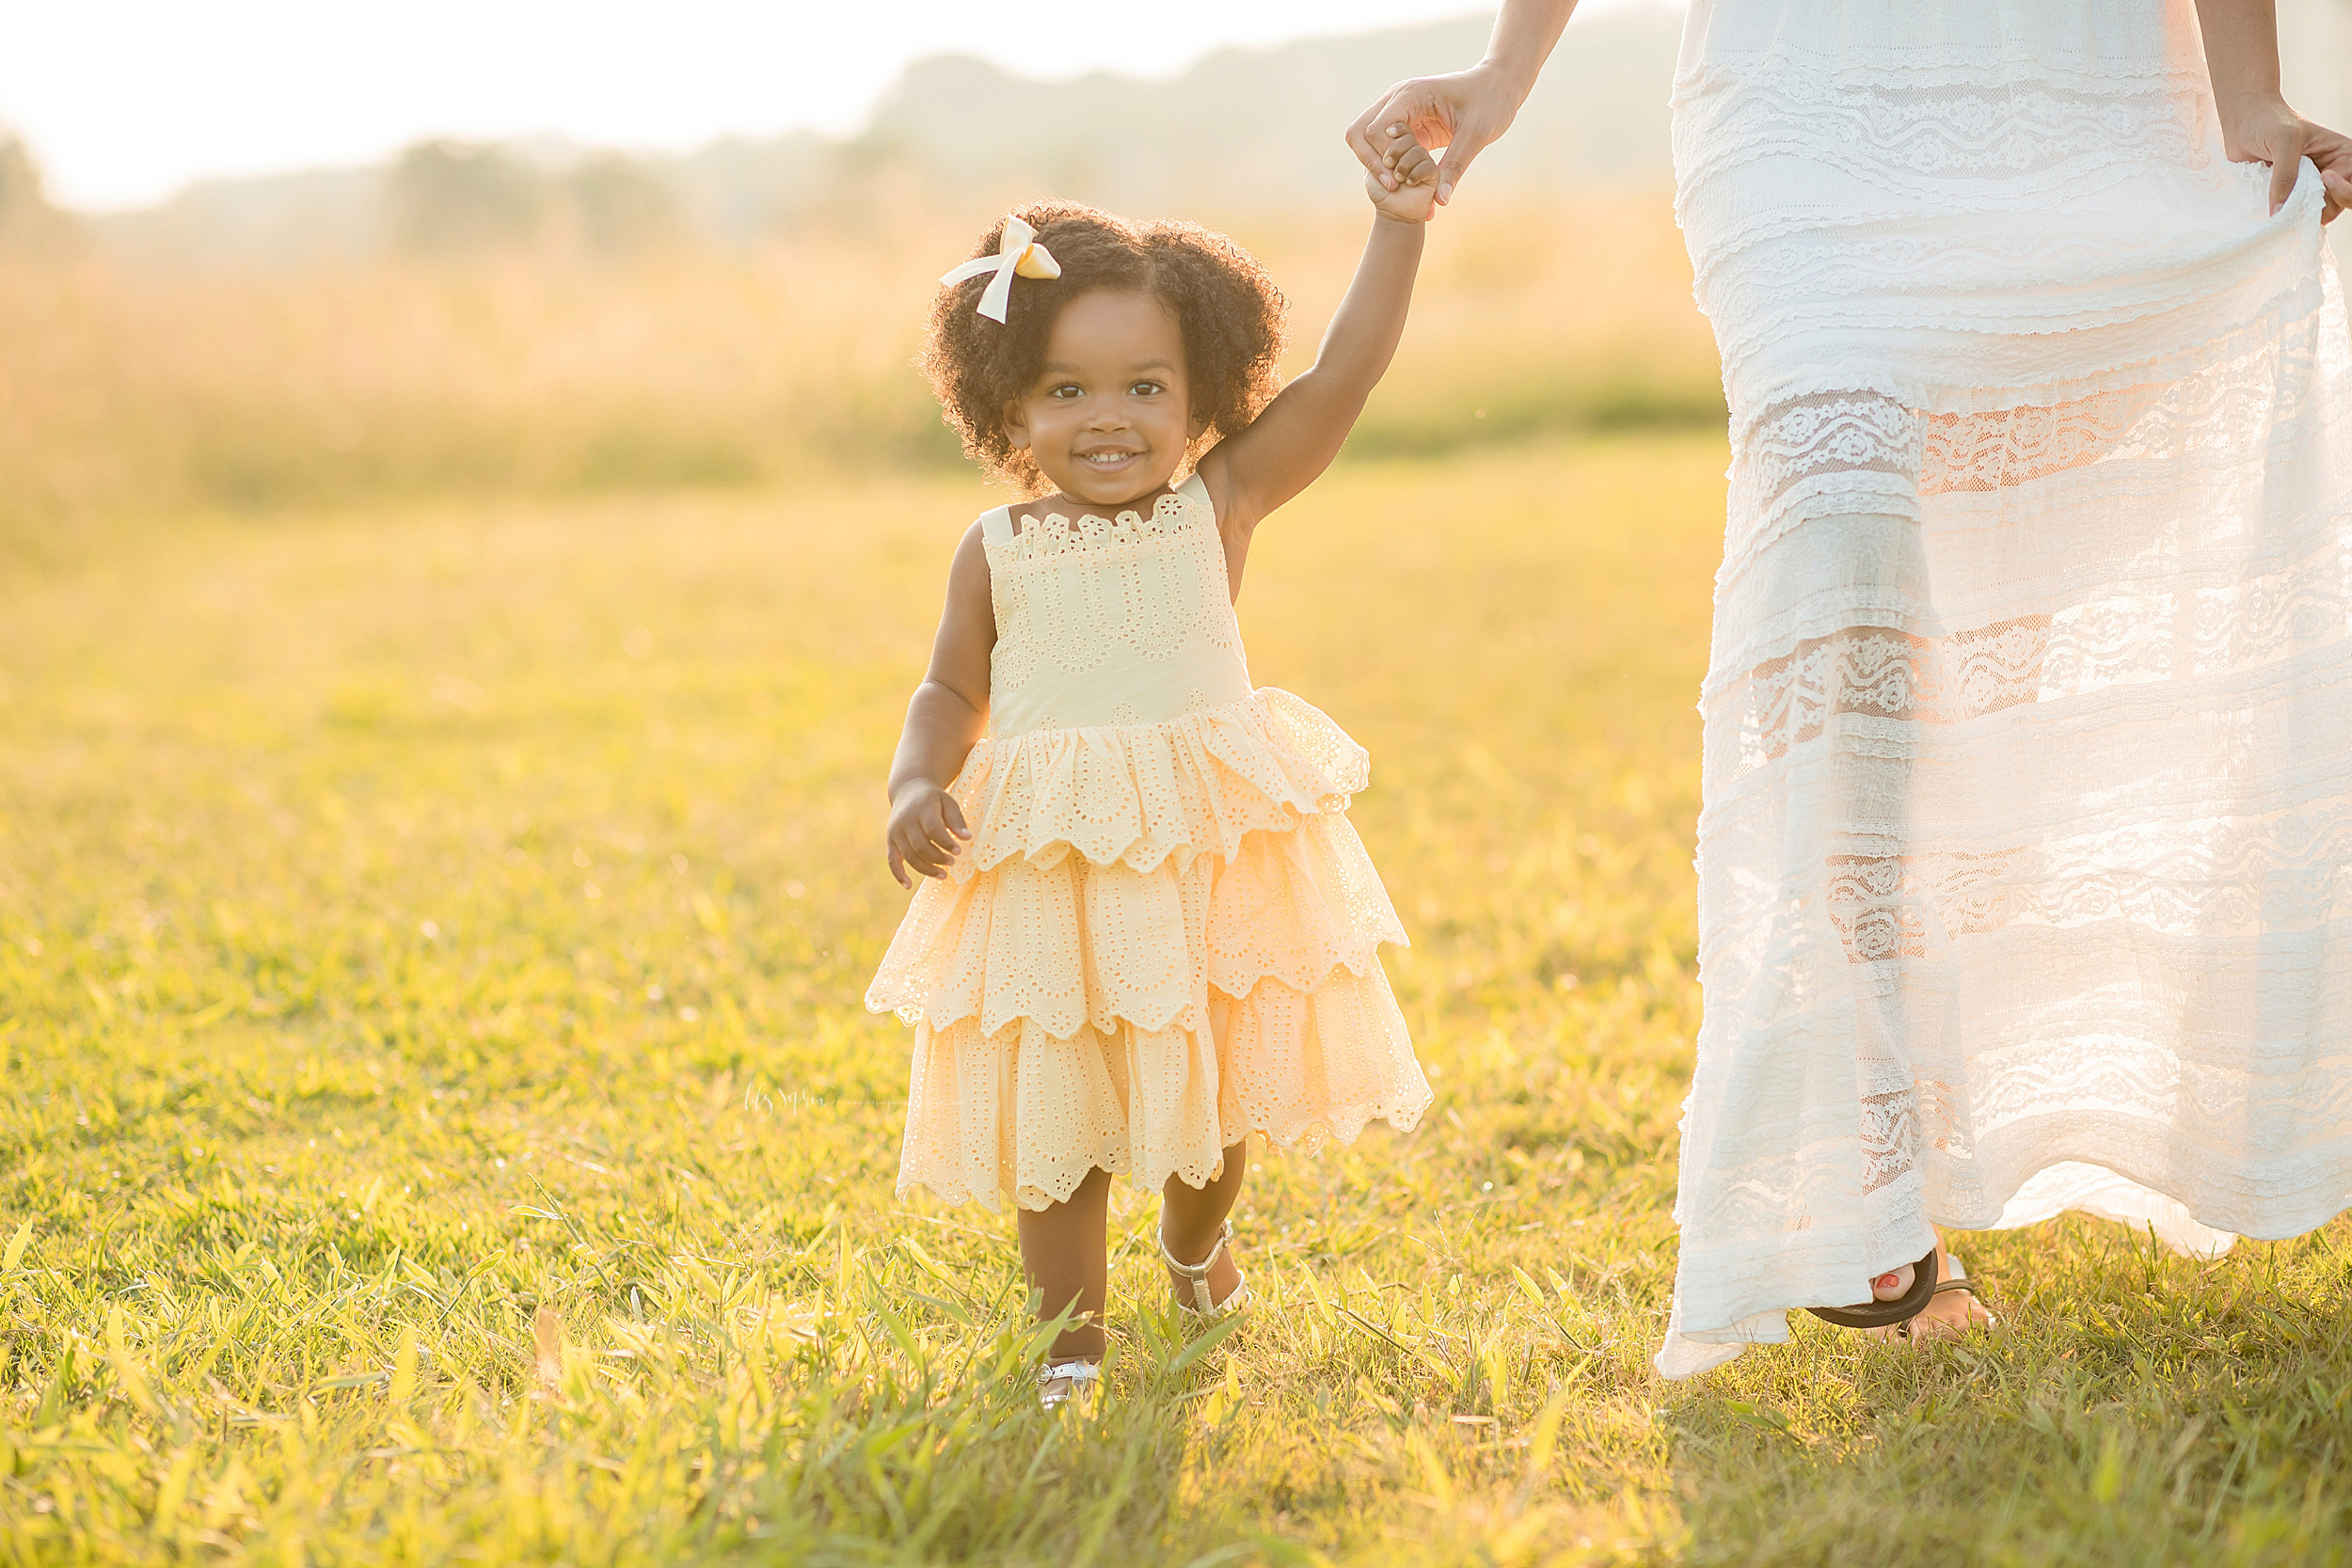 atlanta-midtown-brookhaven-ashford-dunwoody-decatur-lily-sophia-photography-outdoor-sunset-field-mountain-family-photographer-toddler-girl_0396.jpg